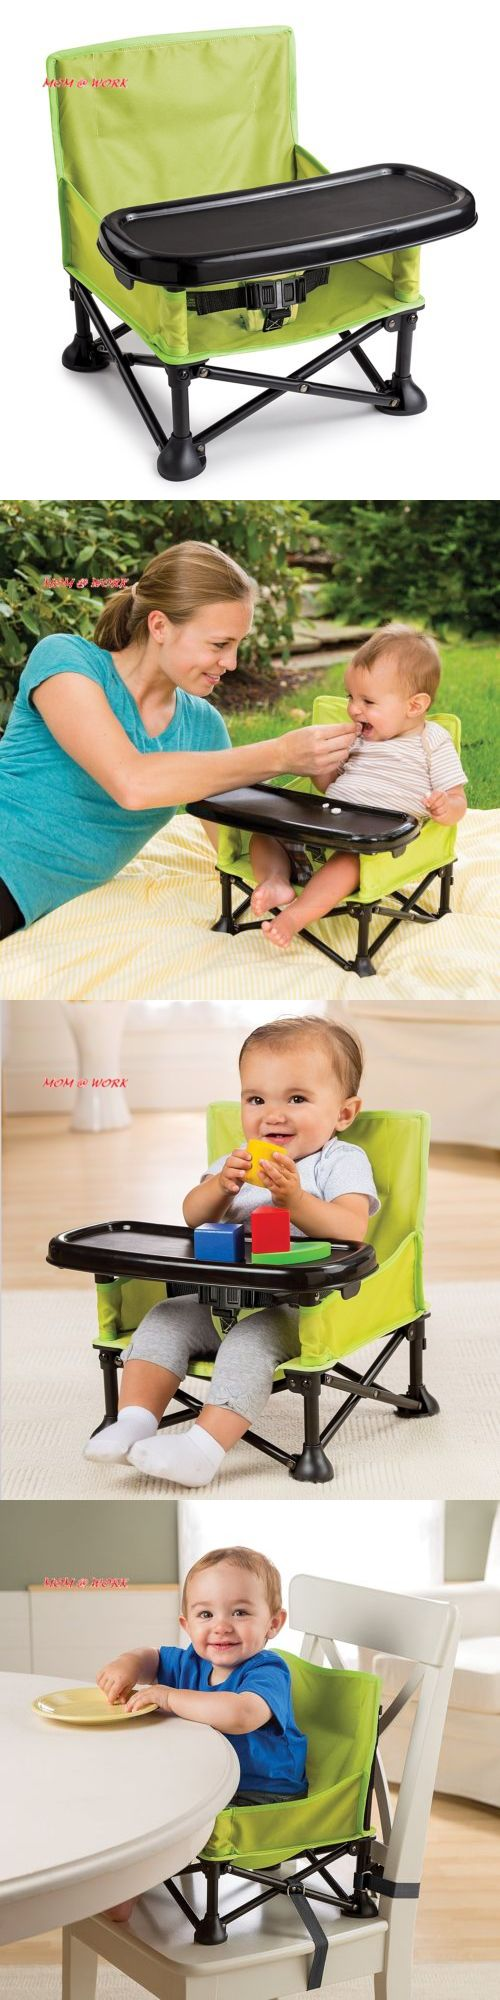 Best 25 High Chairs & Booster Seats Ideas On Pinterest  Baby Captivating Booster Seat For Dining Room Chair Design Inspiration